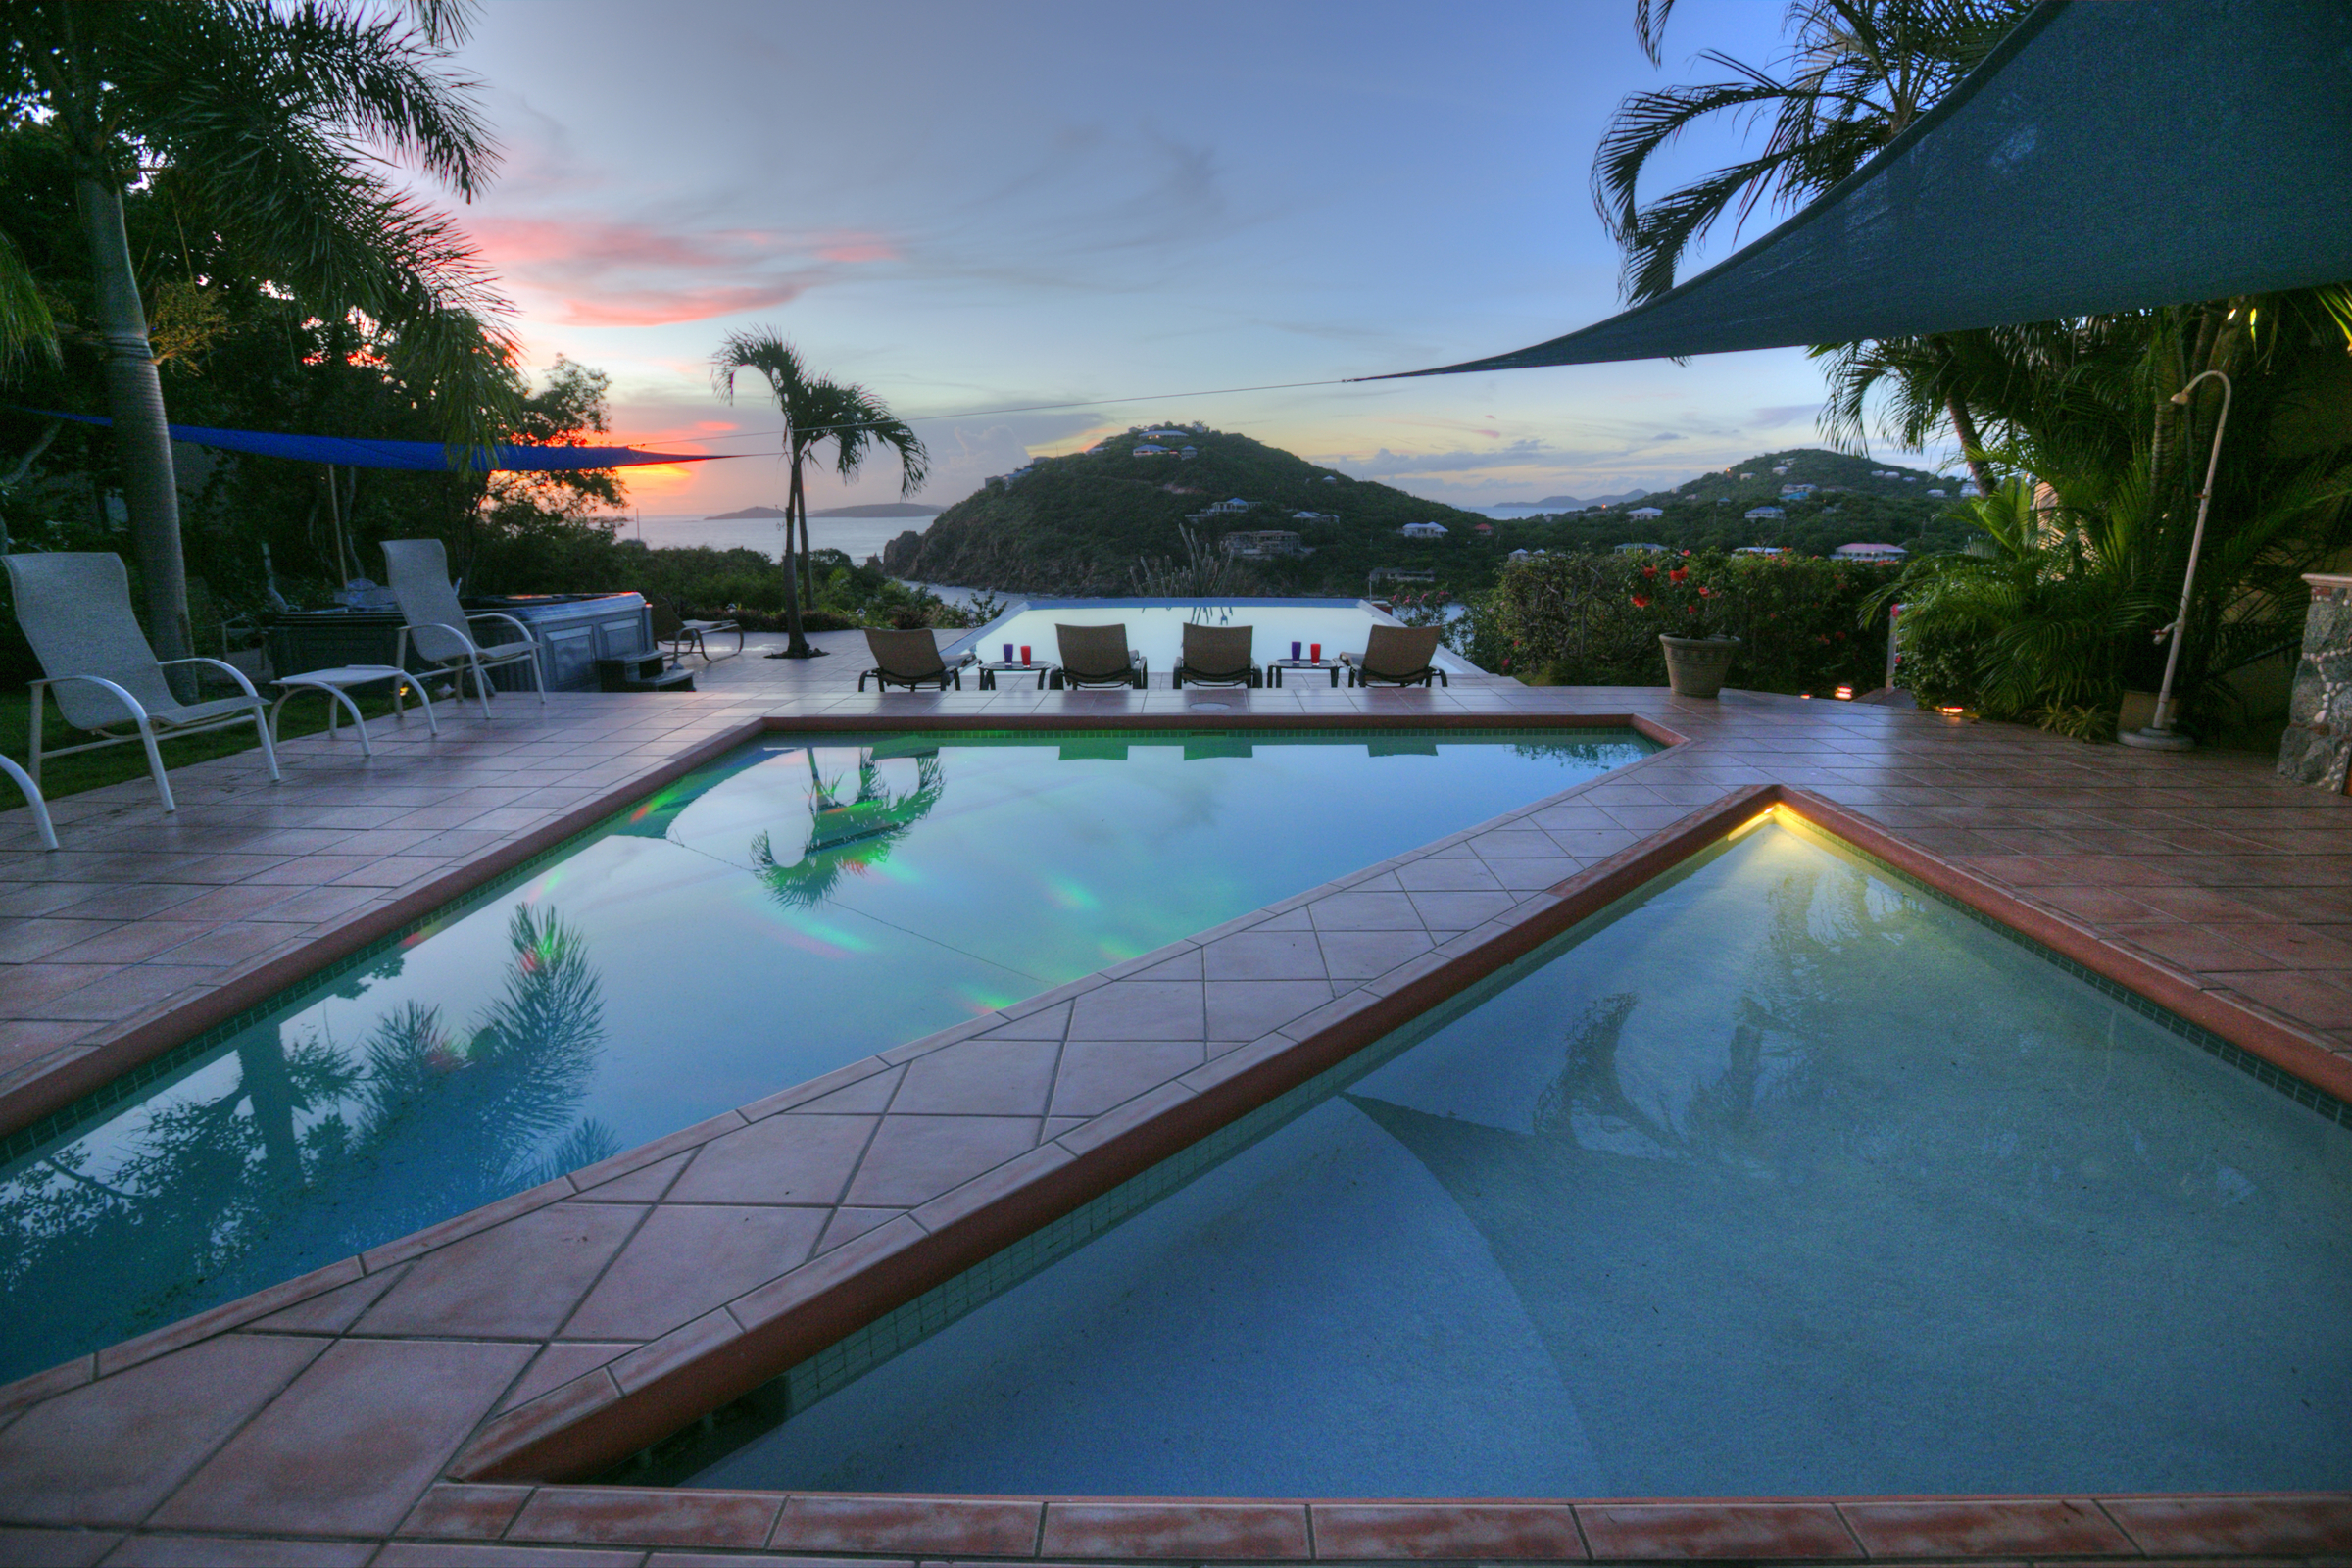 $108 - $141/night* - *with 16 guests, per person per night